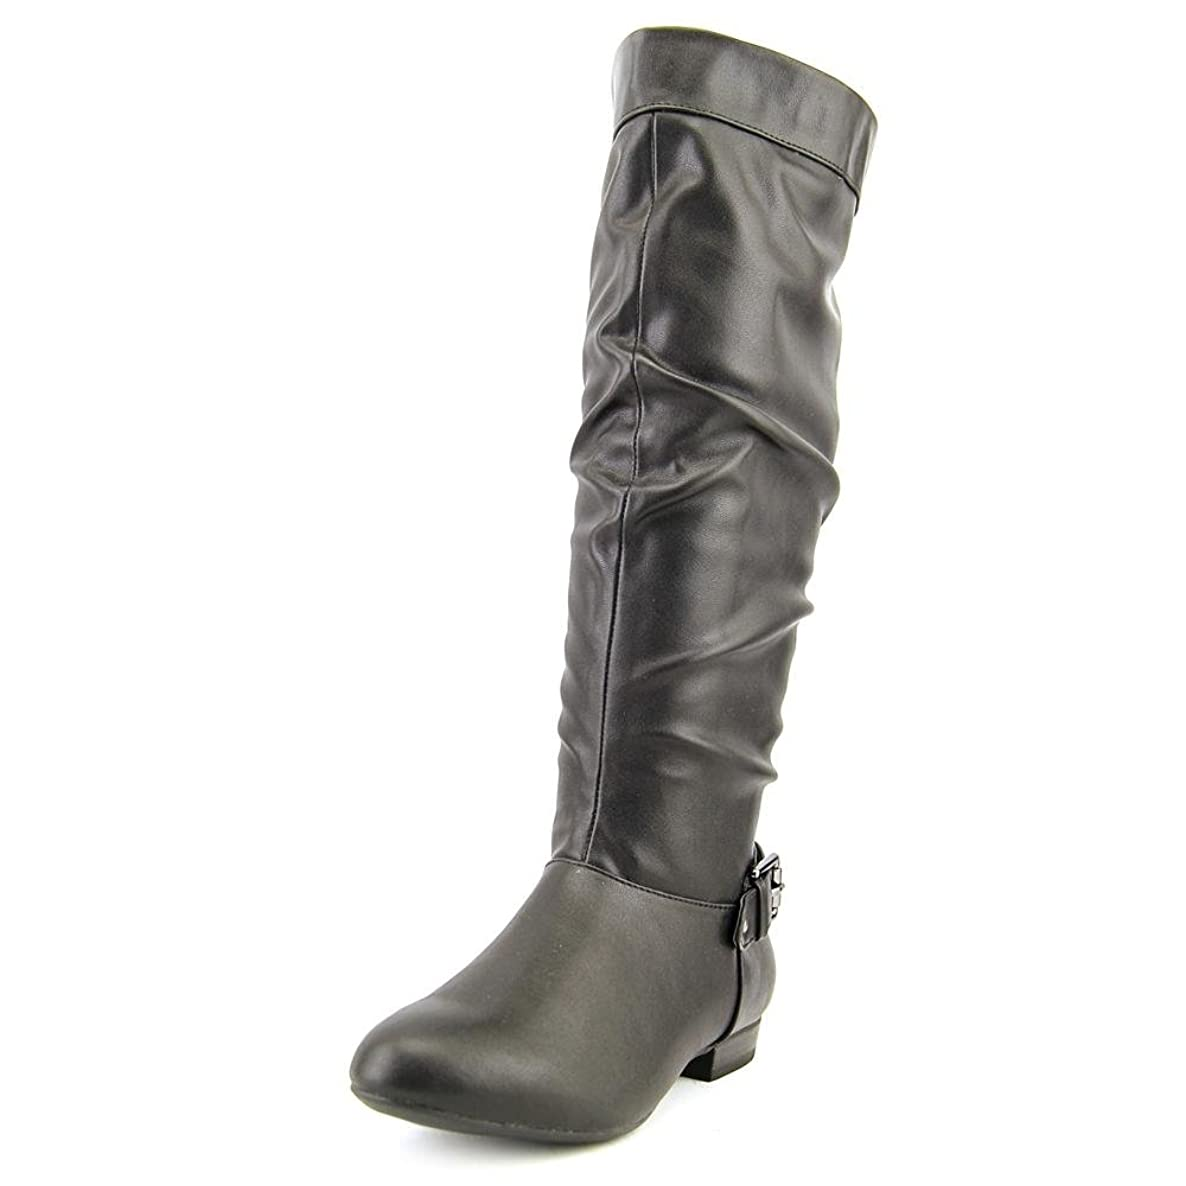 ヘッドレス石化する不安定なStyle & Co. Womens Pettra Closed Toe Fashion Boots